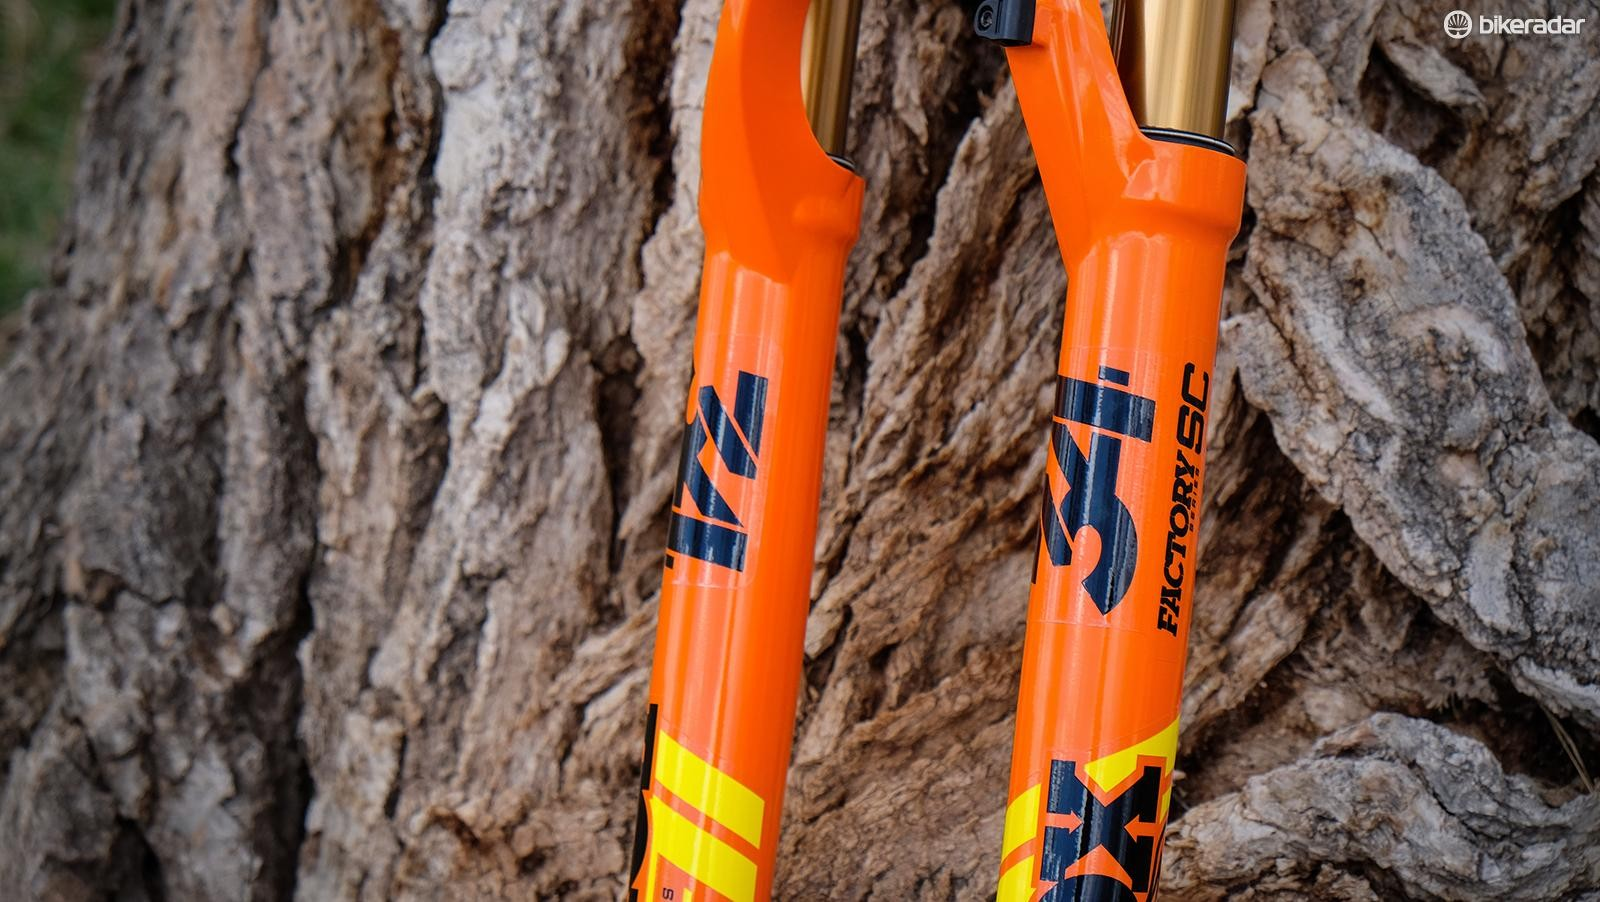 The 34 chassis was designed for trail bikes, the 34SC is targeted at race-worthy 29er trail bikes